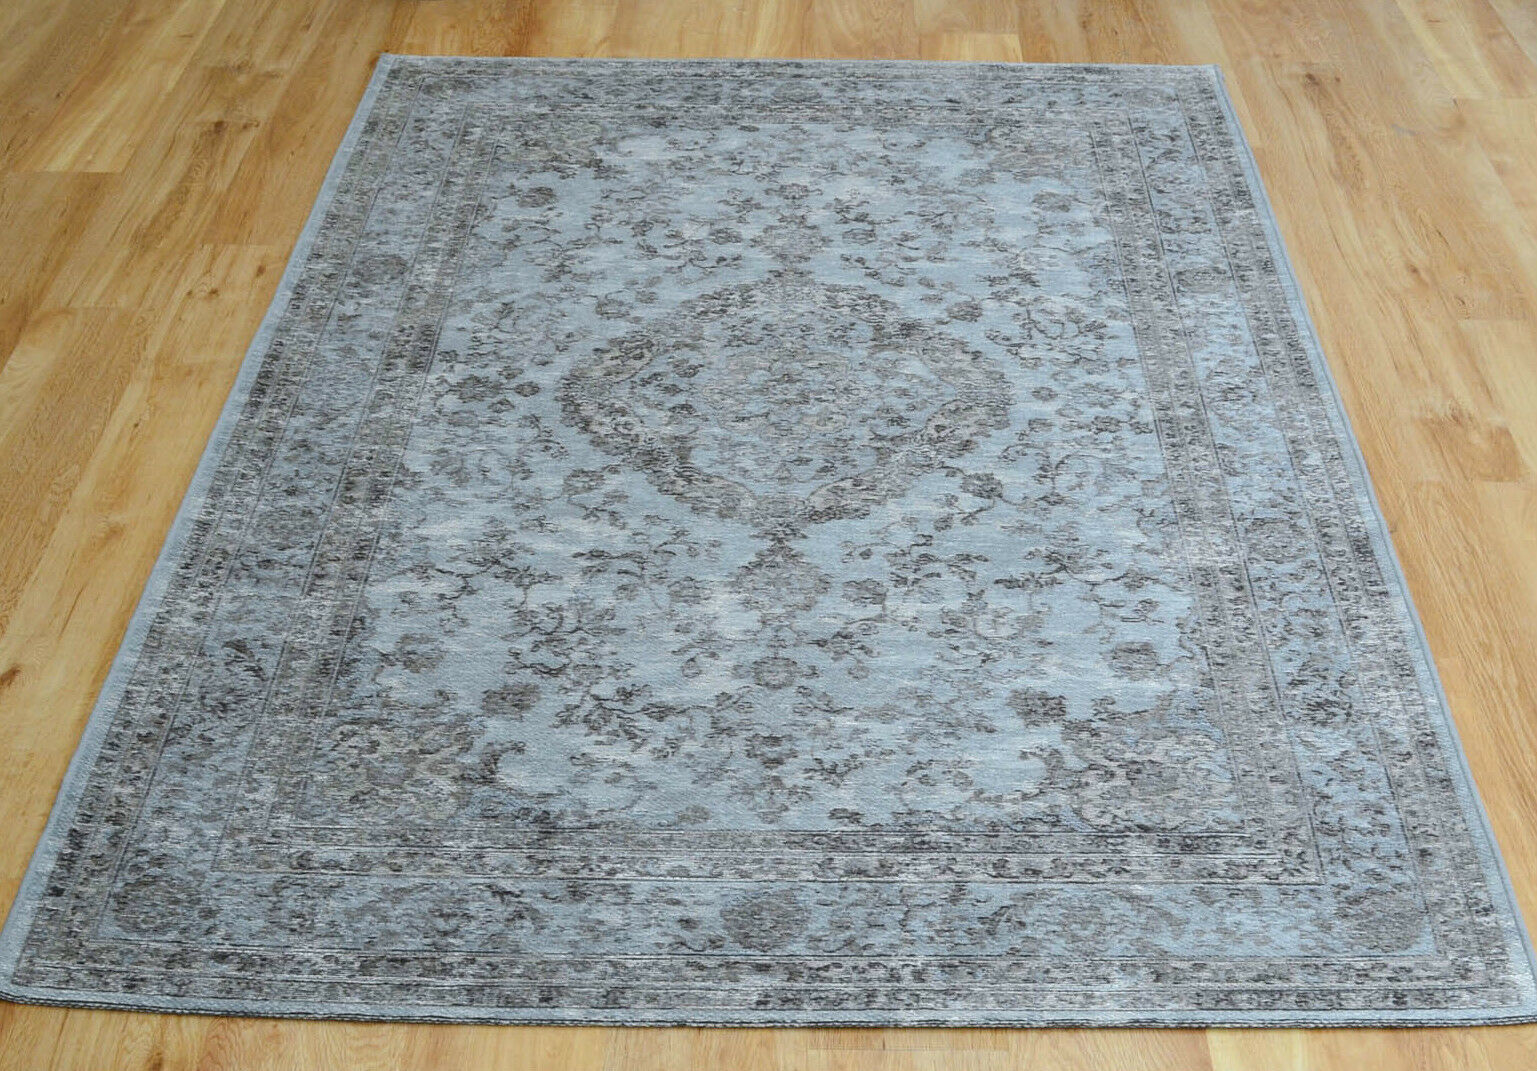 Vintage Blau grau Traditional Persian Medallion Style Cotton Cotton Cotton Chenille Rug 30% OF fbdf44